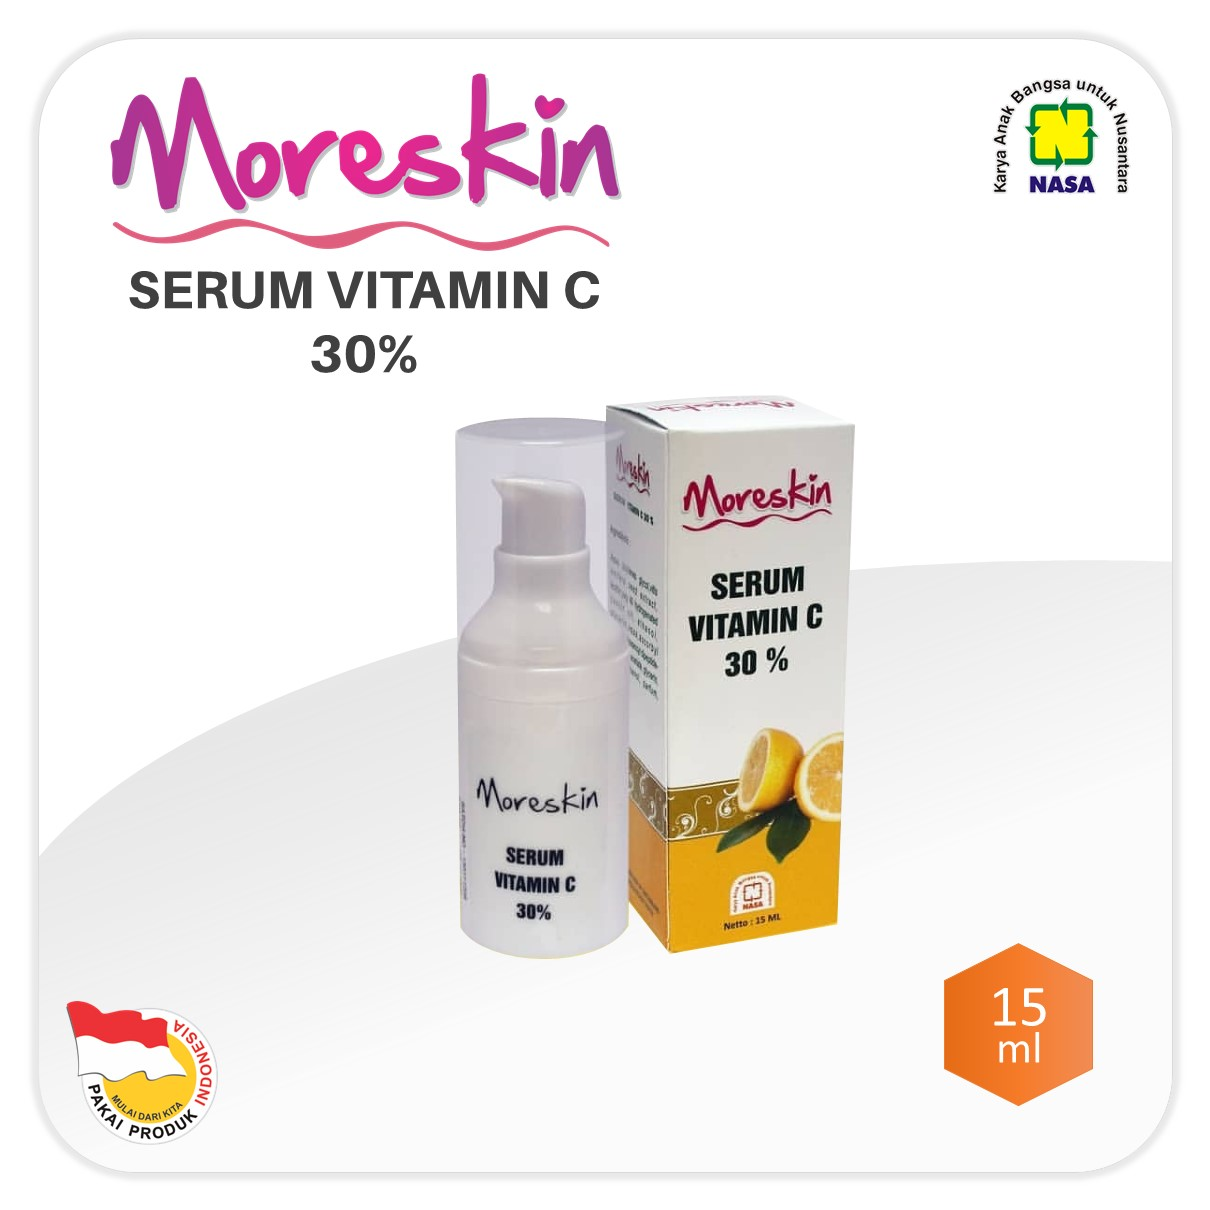 MORESKIN Serum Vitamin C 30% NASA